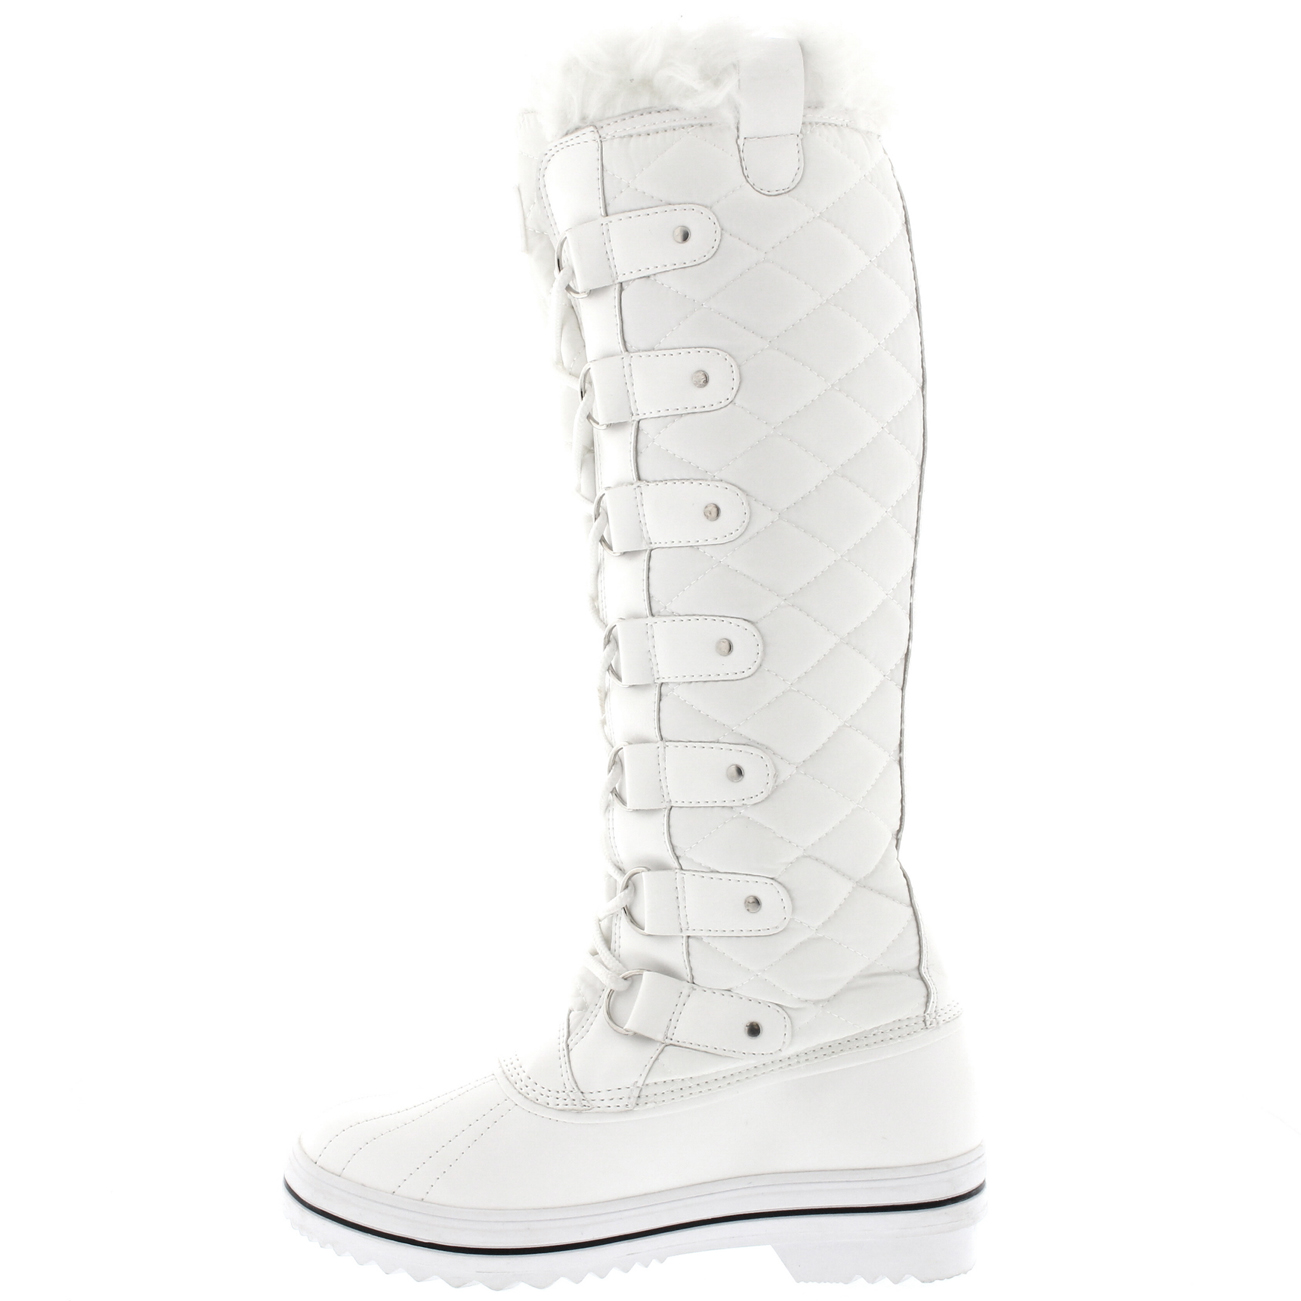 Ladies Quilted Fur Lined Duck Muck Winter Rain Snow Knee High ... : quilted winter boots - Adamdwight.com